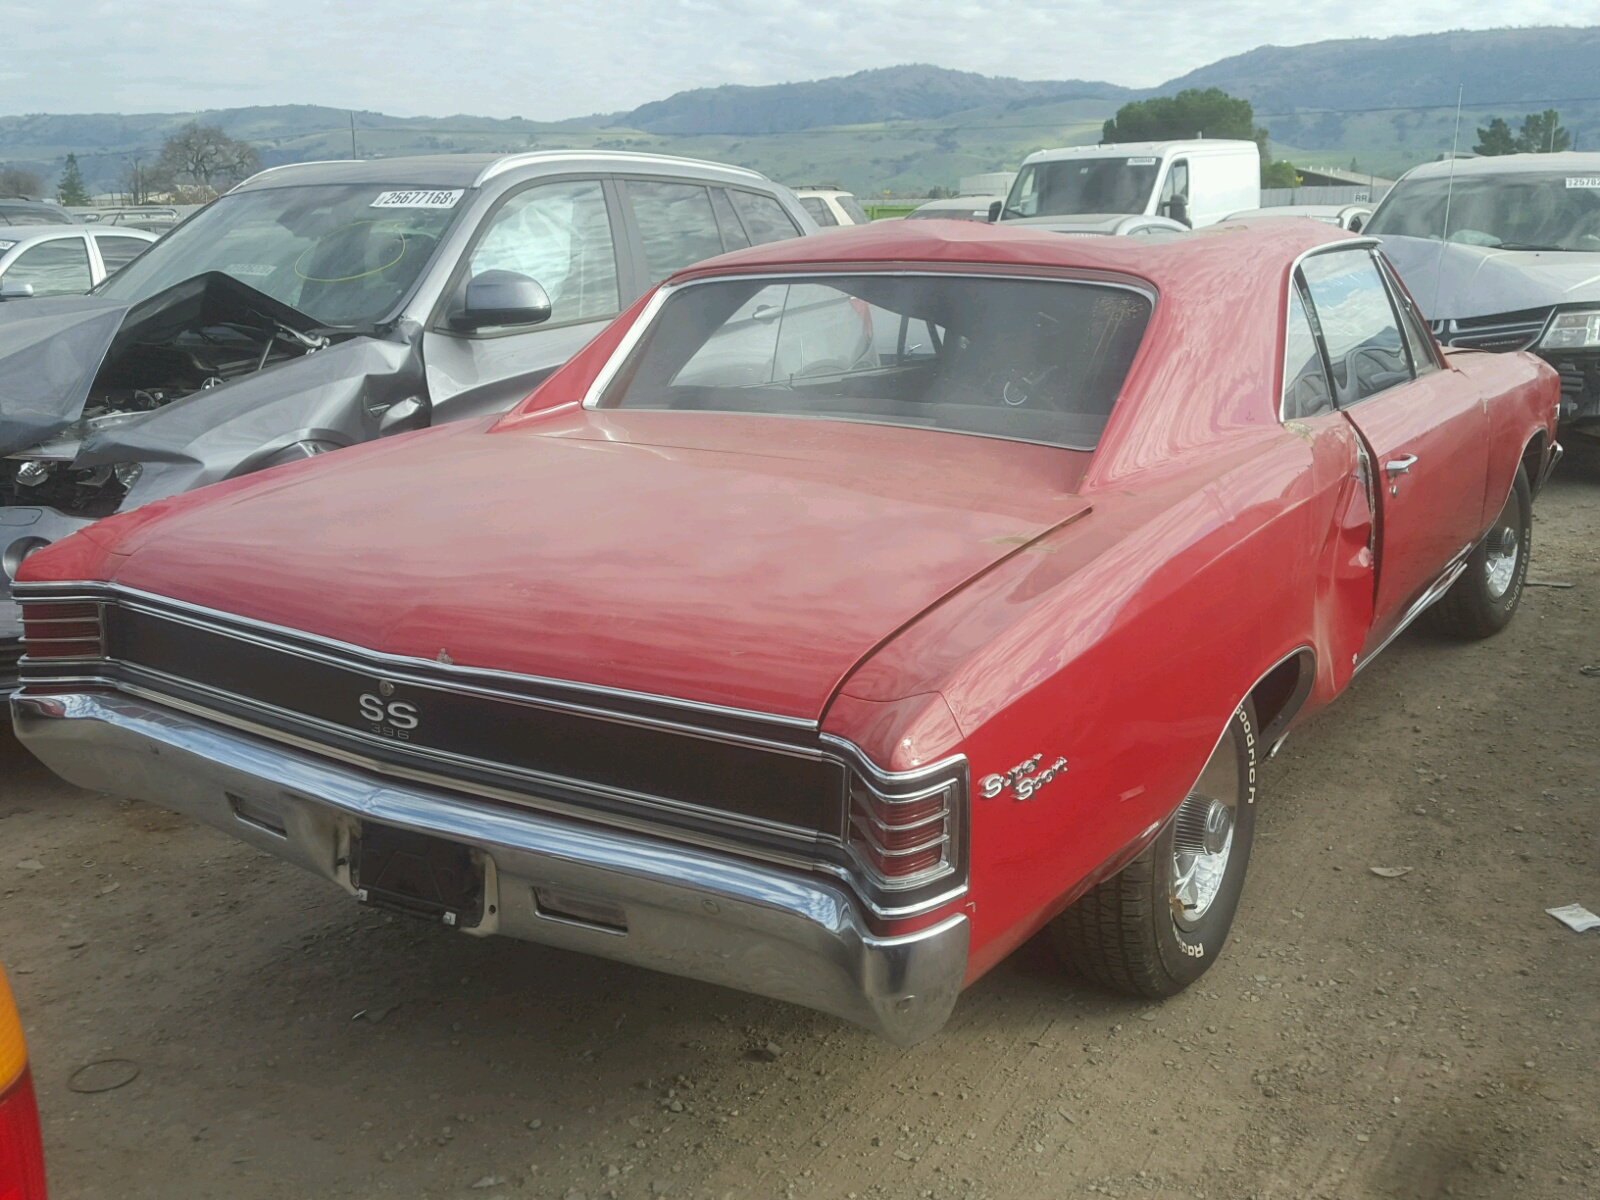 1967 Chevrolet Chevell SS for sale at Copart San Martin CA Lot